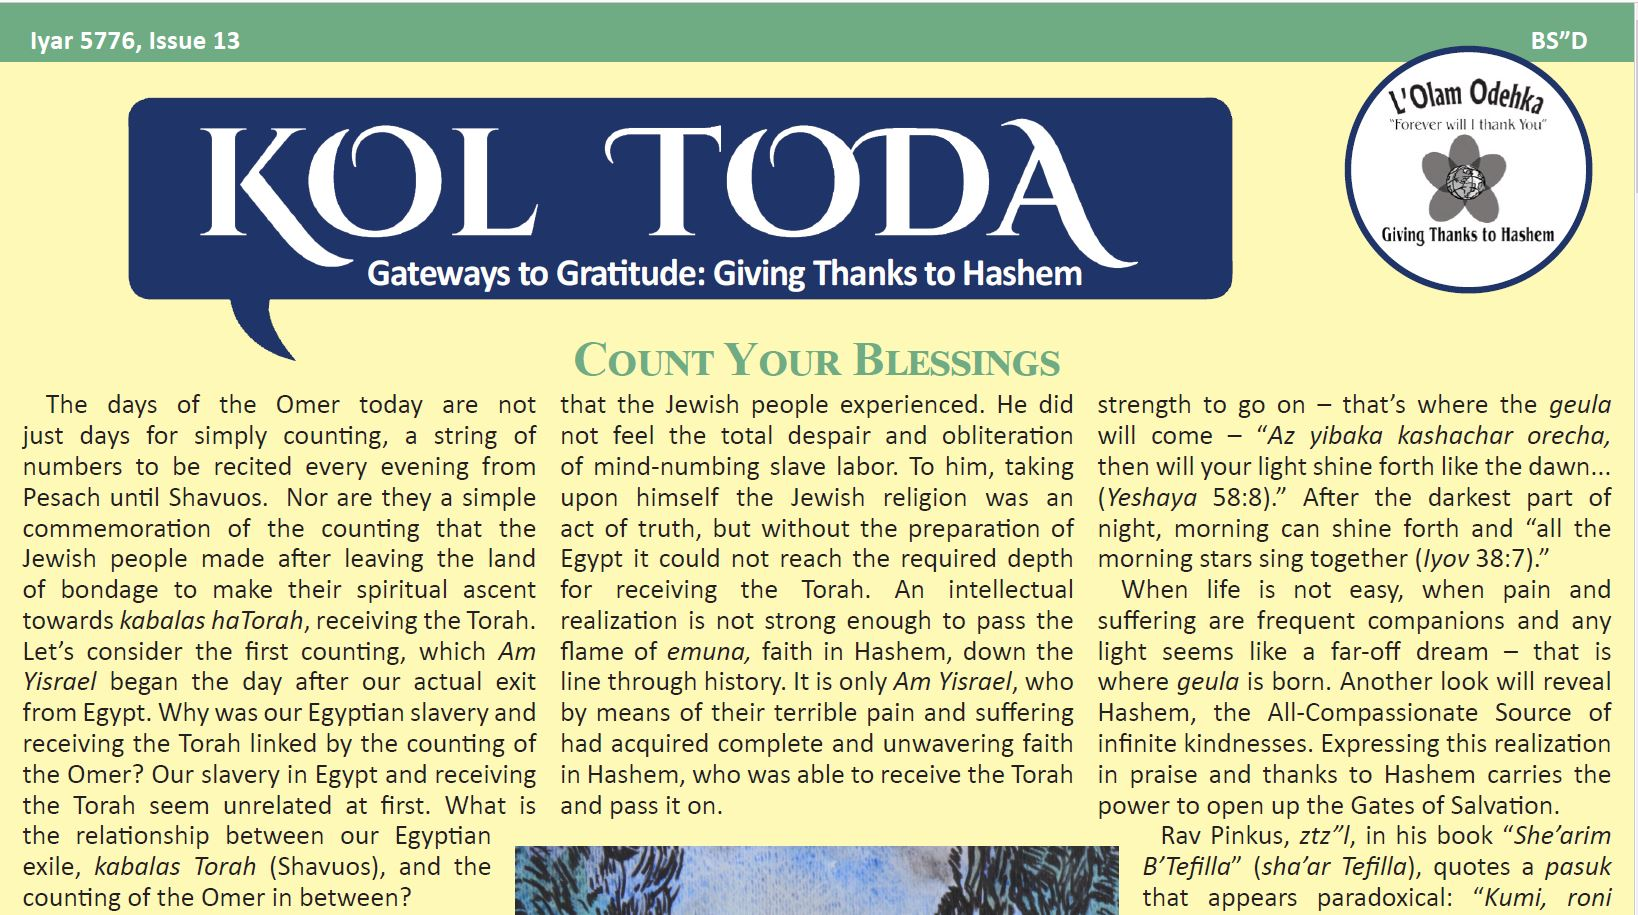 giving thanks to 'hashem